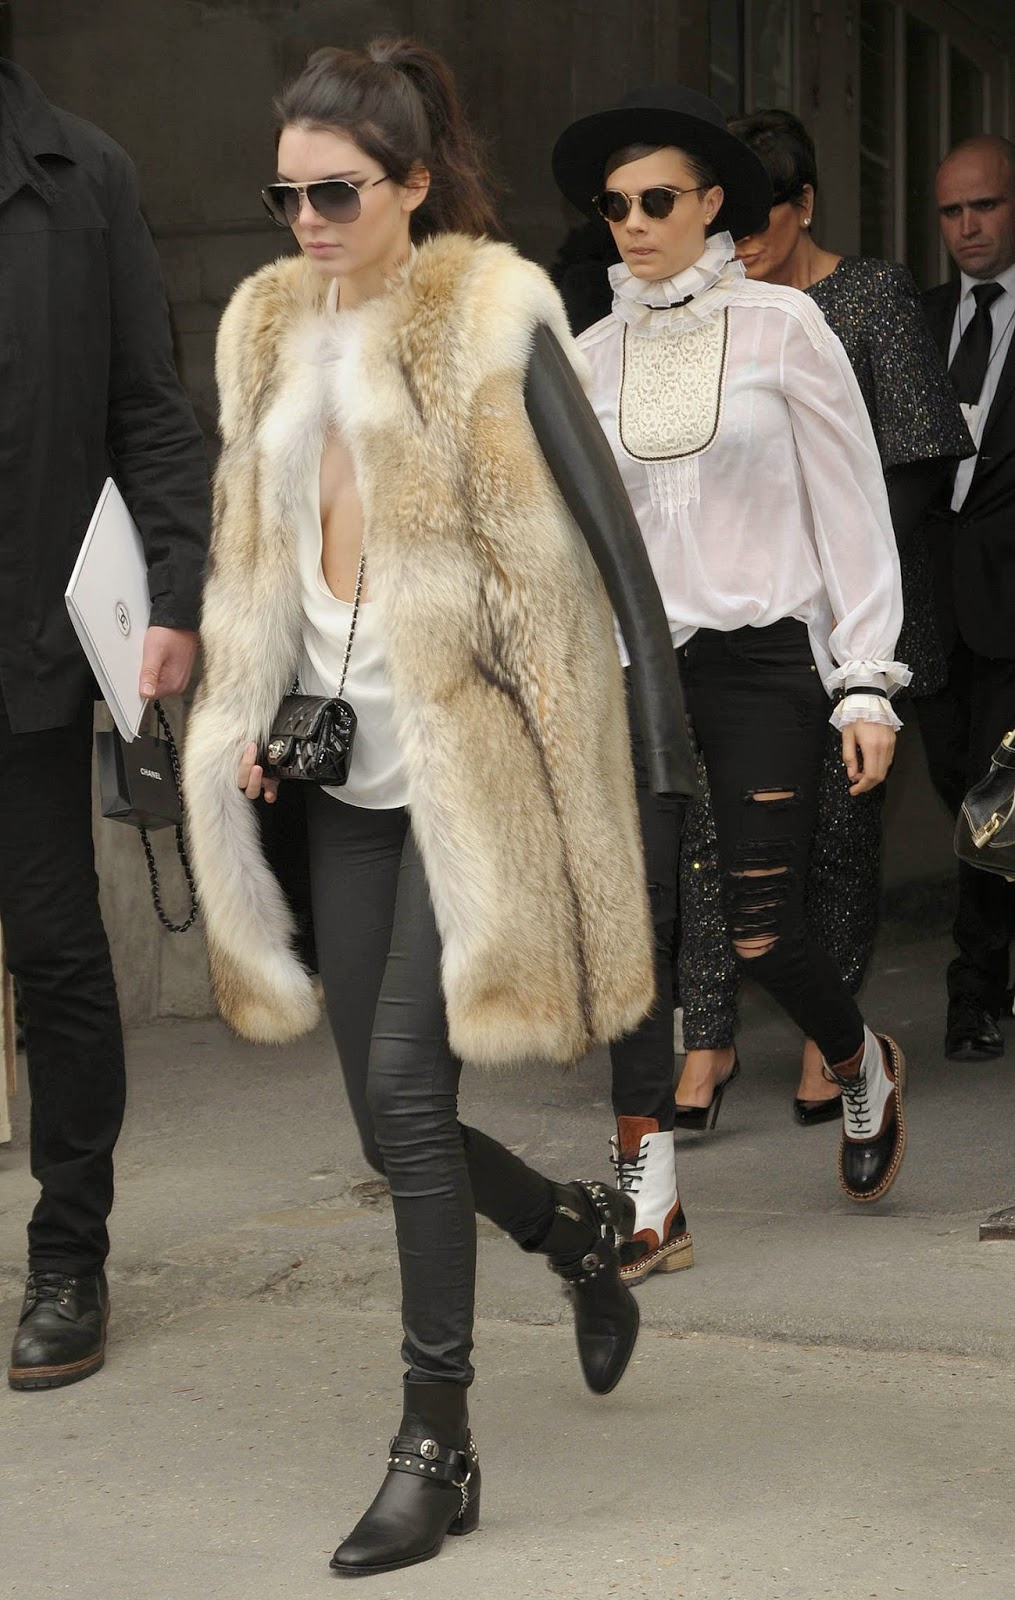 Fashion Model, TV Personality @ Kendall Jenner Leaving the Chanel Fashion Show in Paris